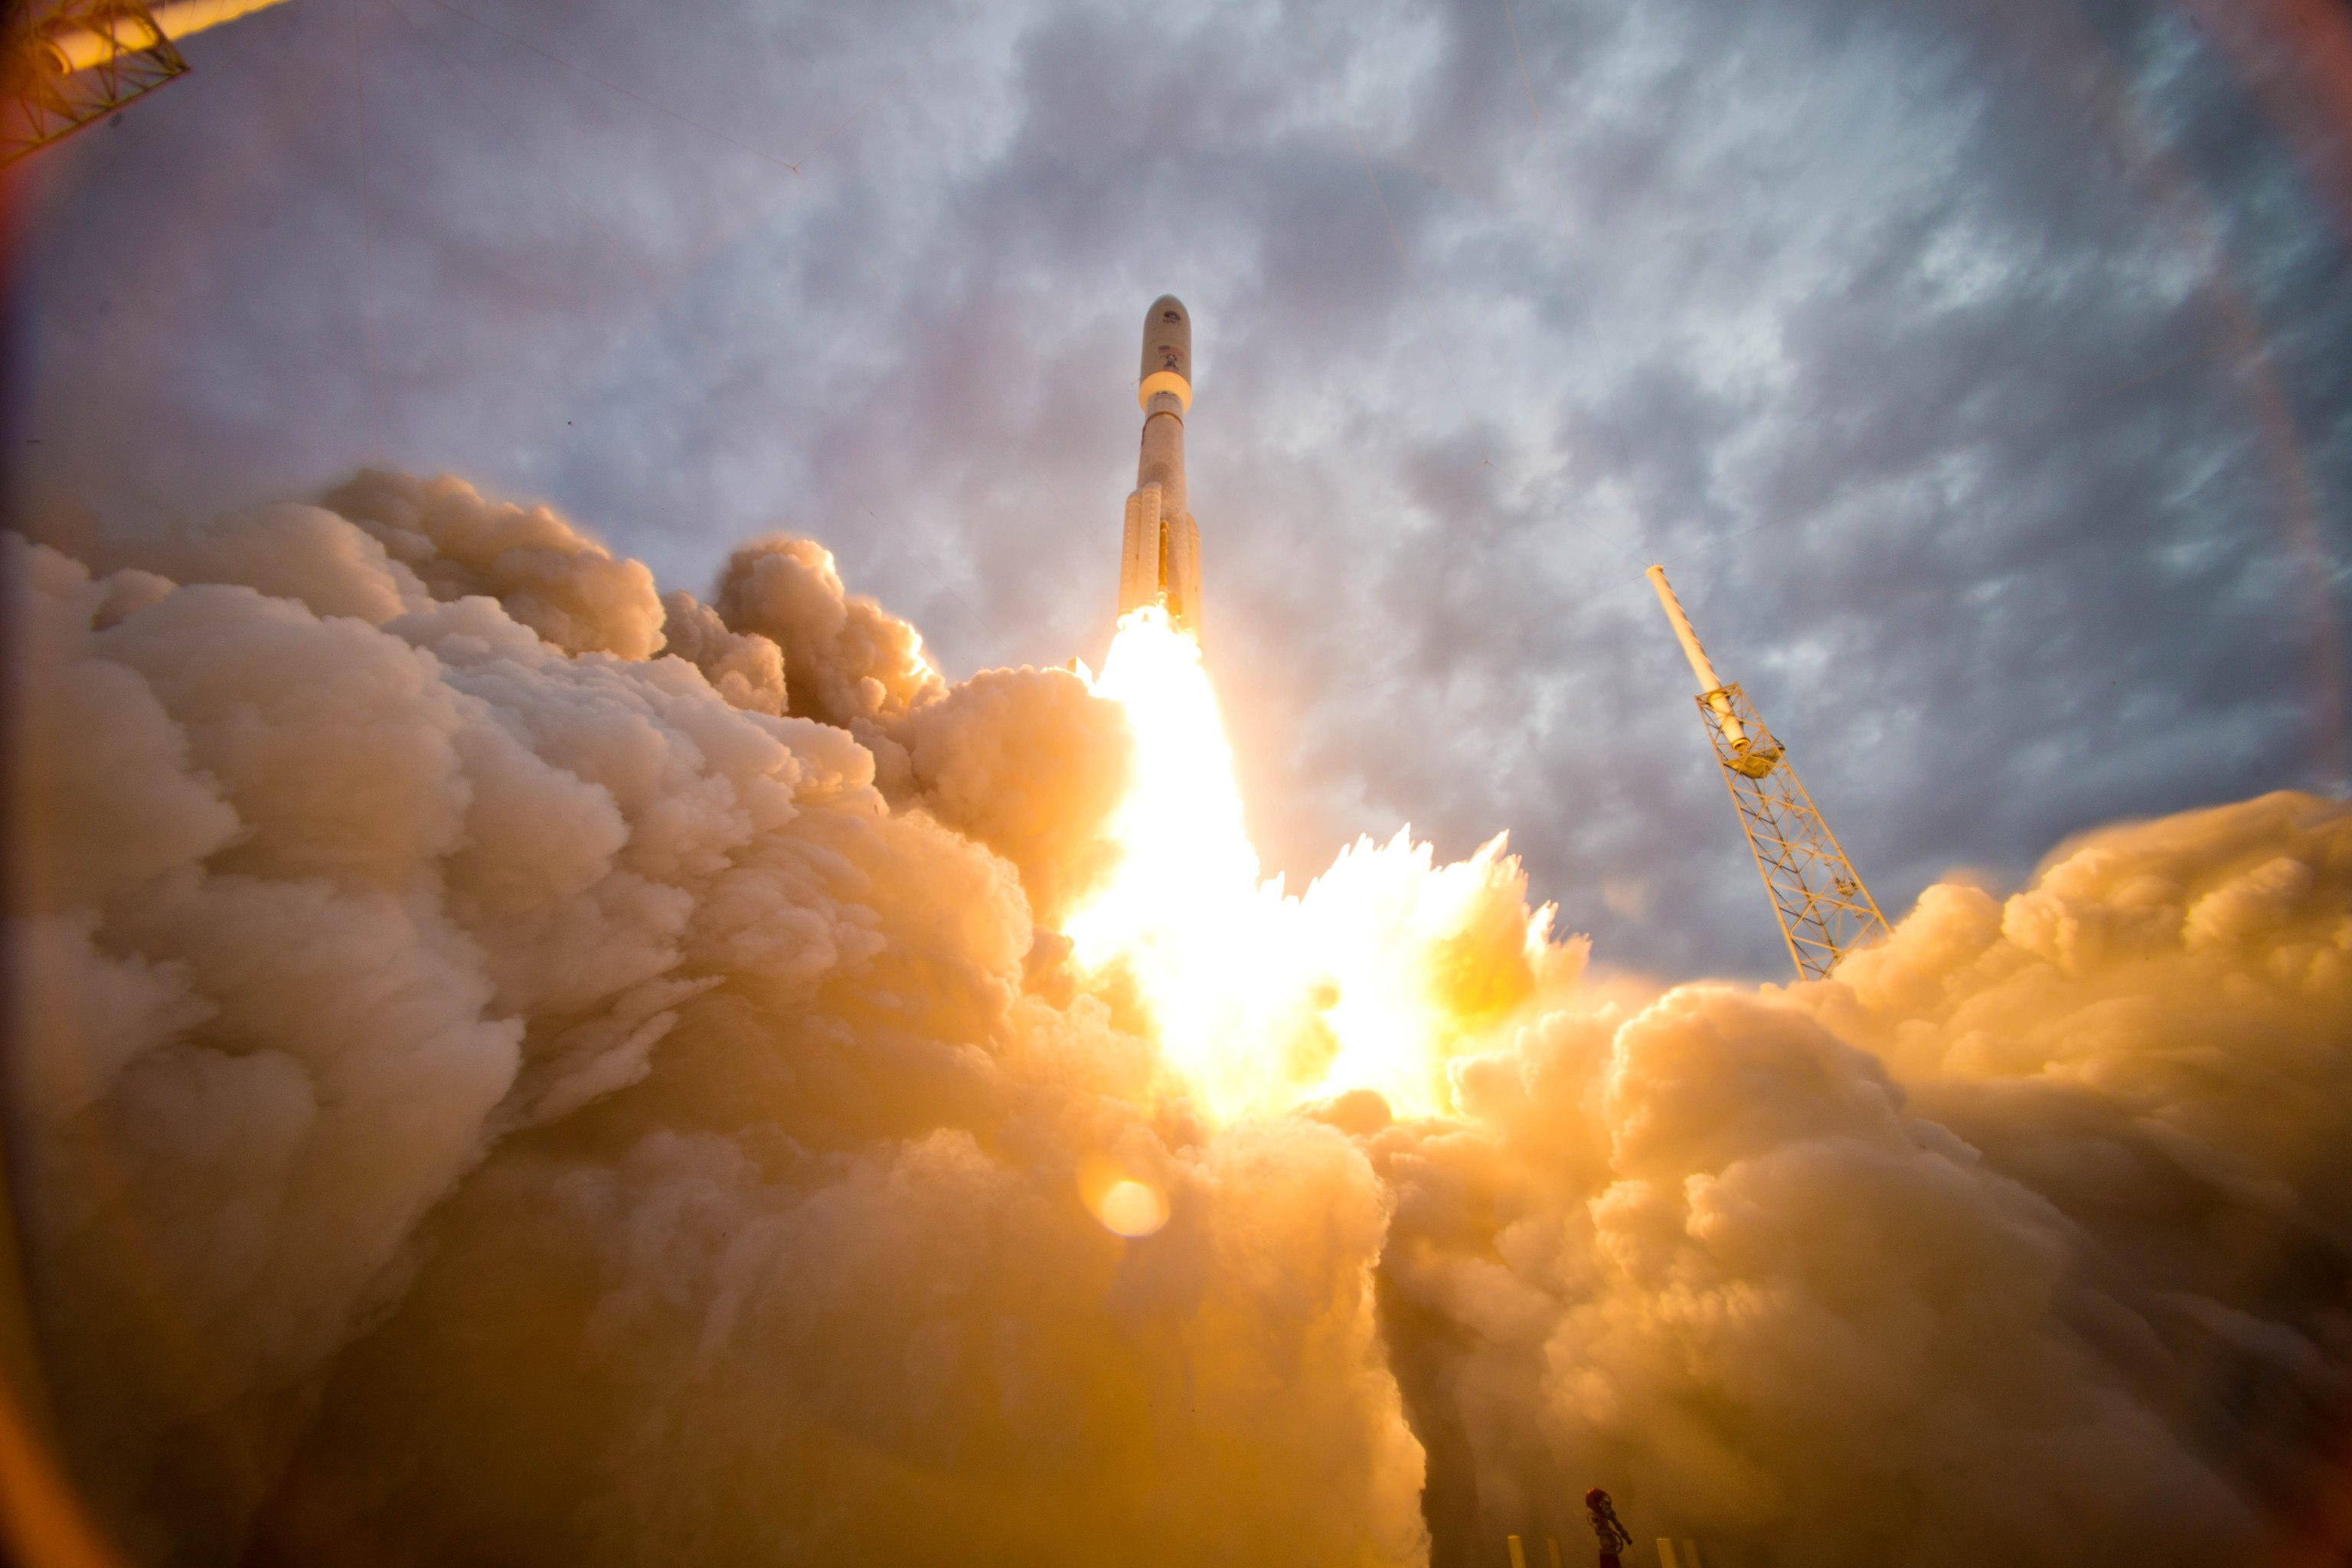 Launch of Atlas V MUOS-2, July 19, 2013 from Cape Canaveral AFS